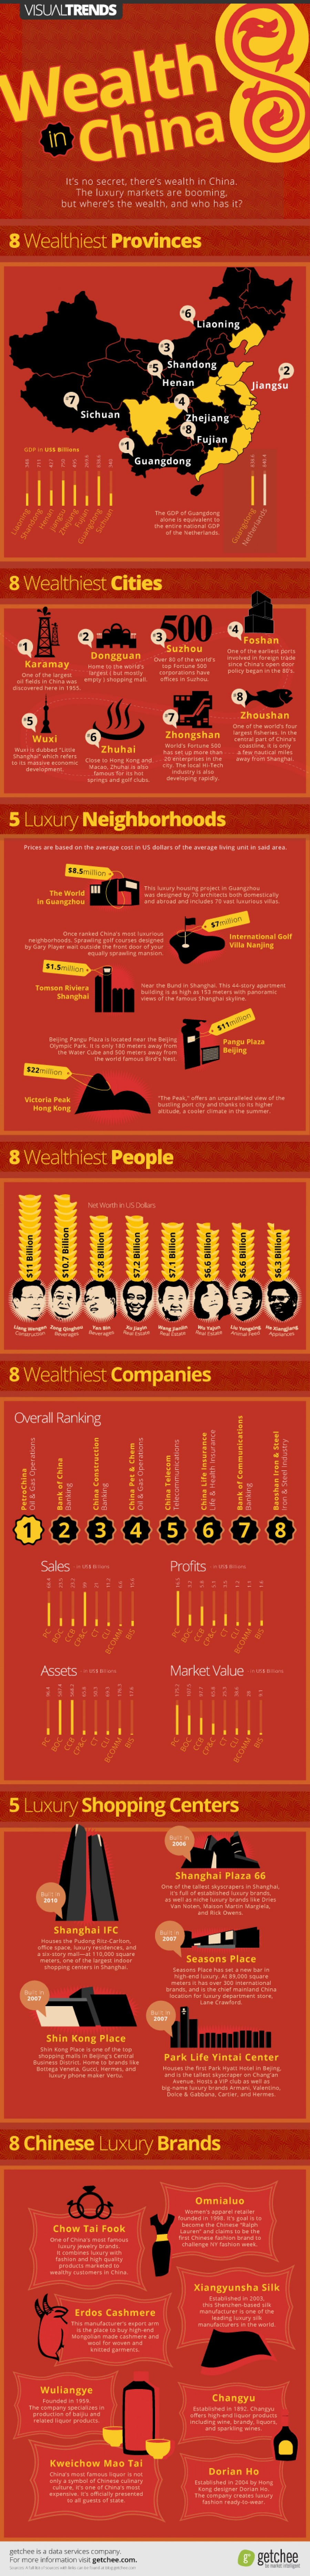 5. Wealth in China